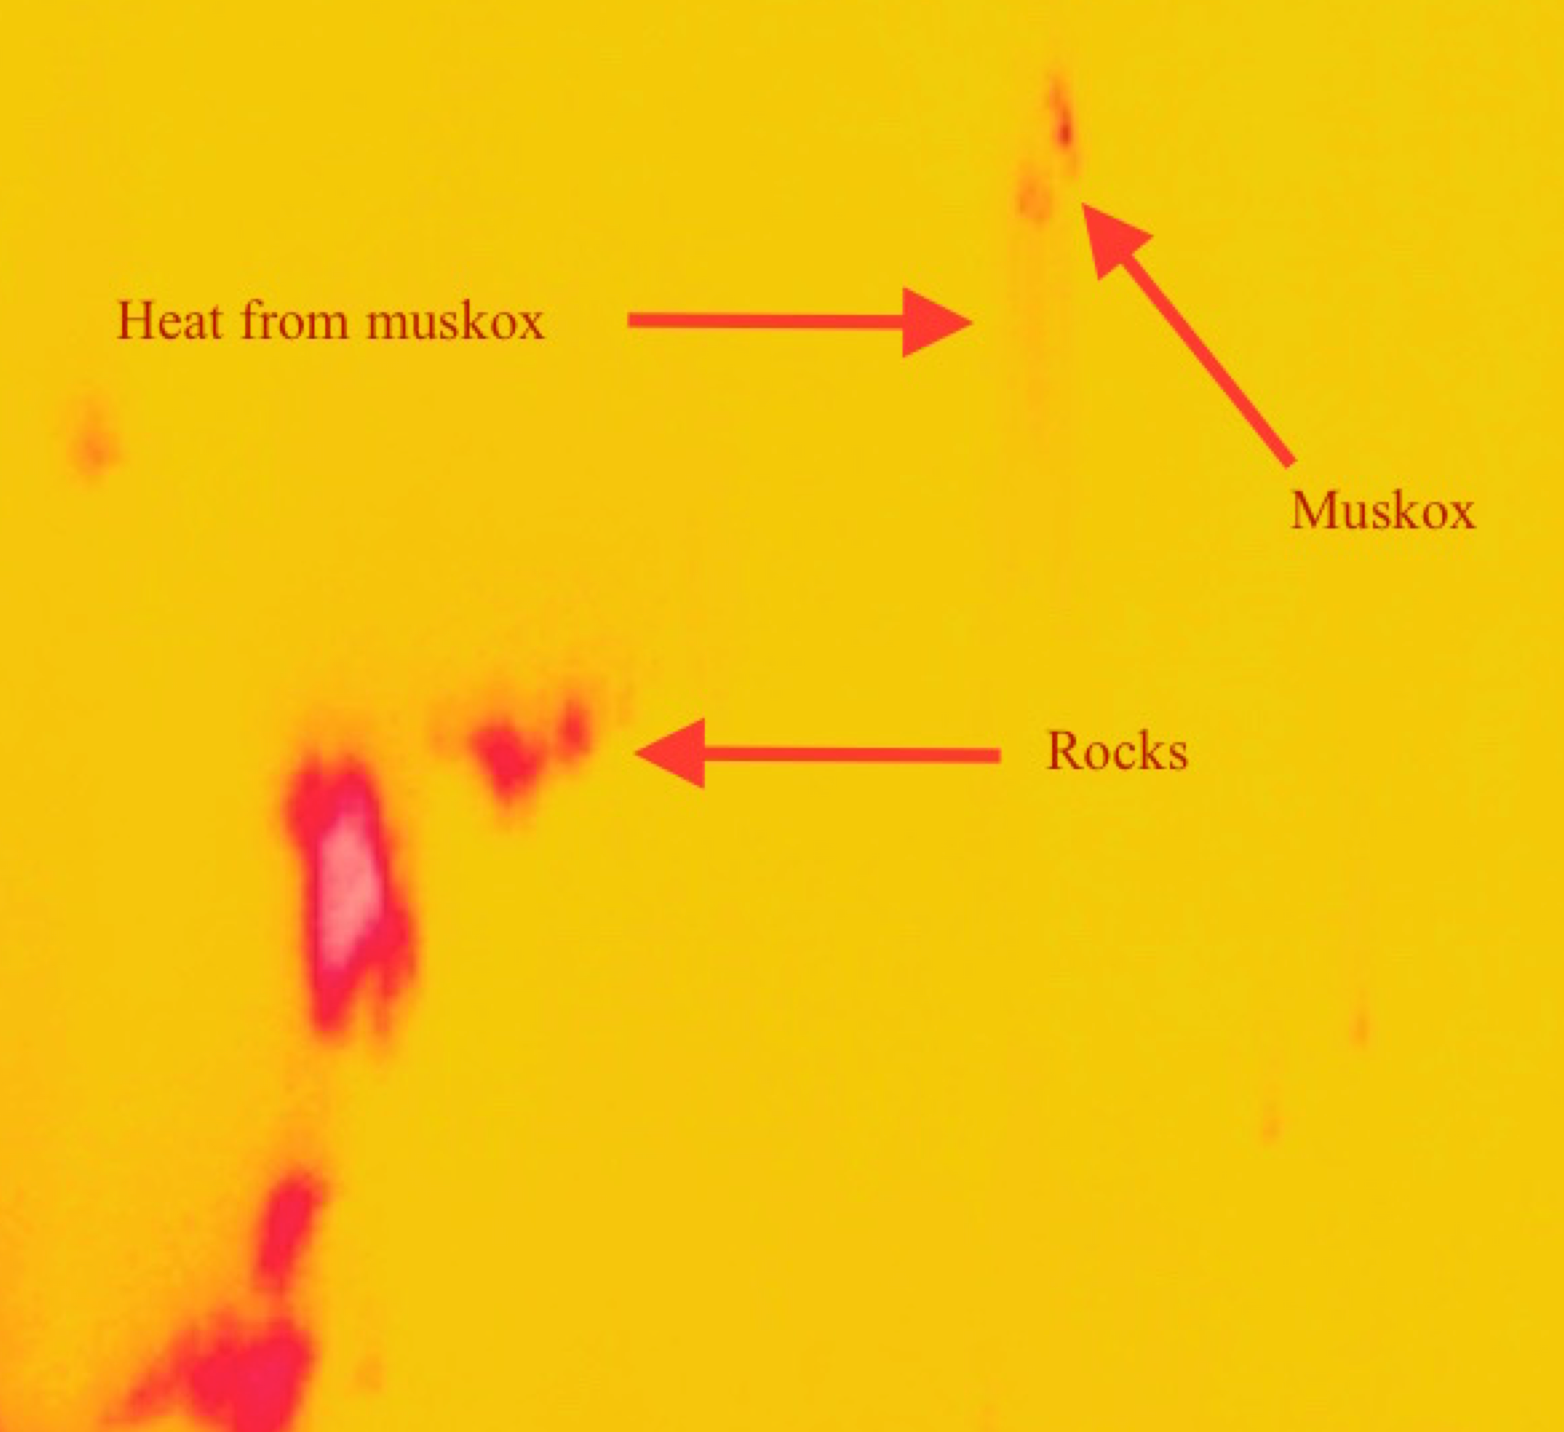 This image shows the combined FLIR and CAMBOT images. Red blurs show heat signatures left by the muskoxen.